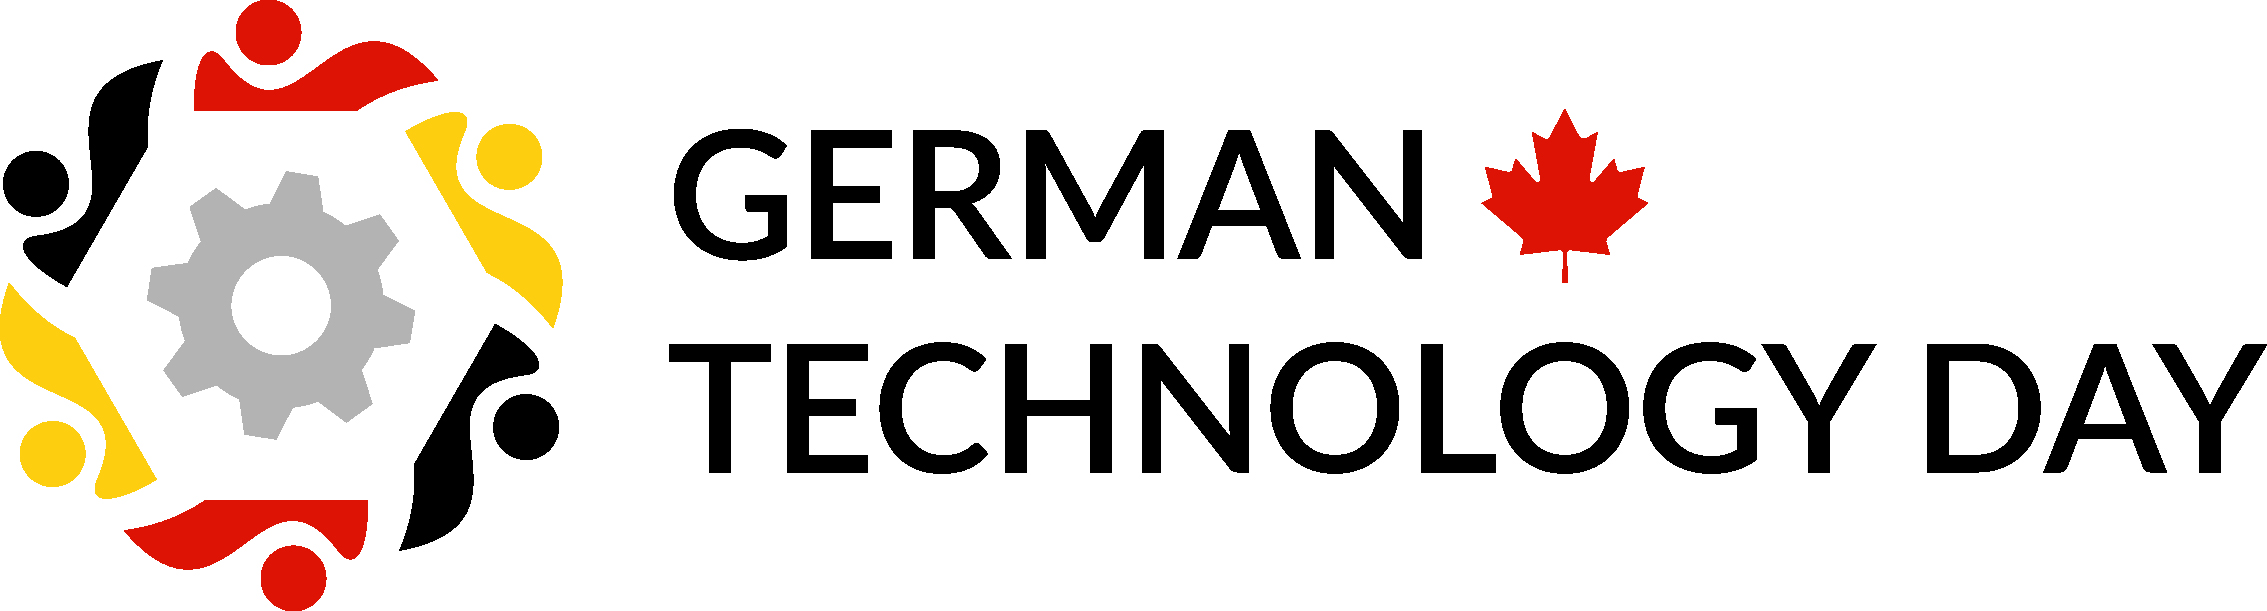 German Technology Day